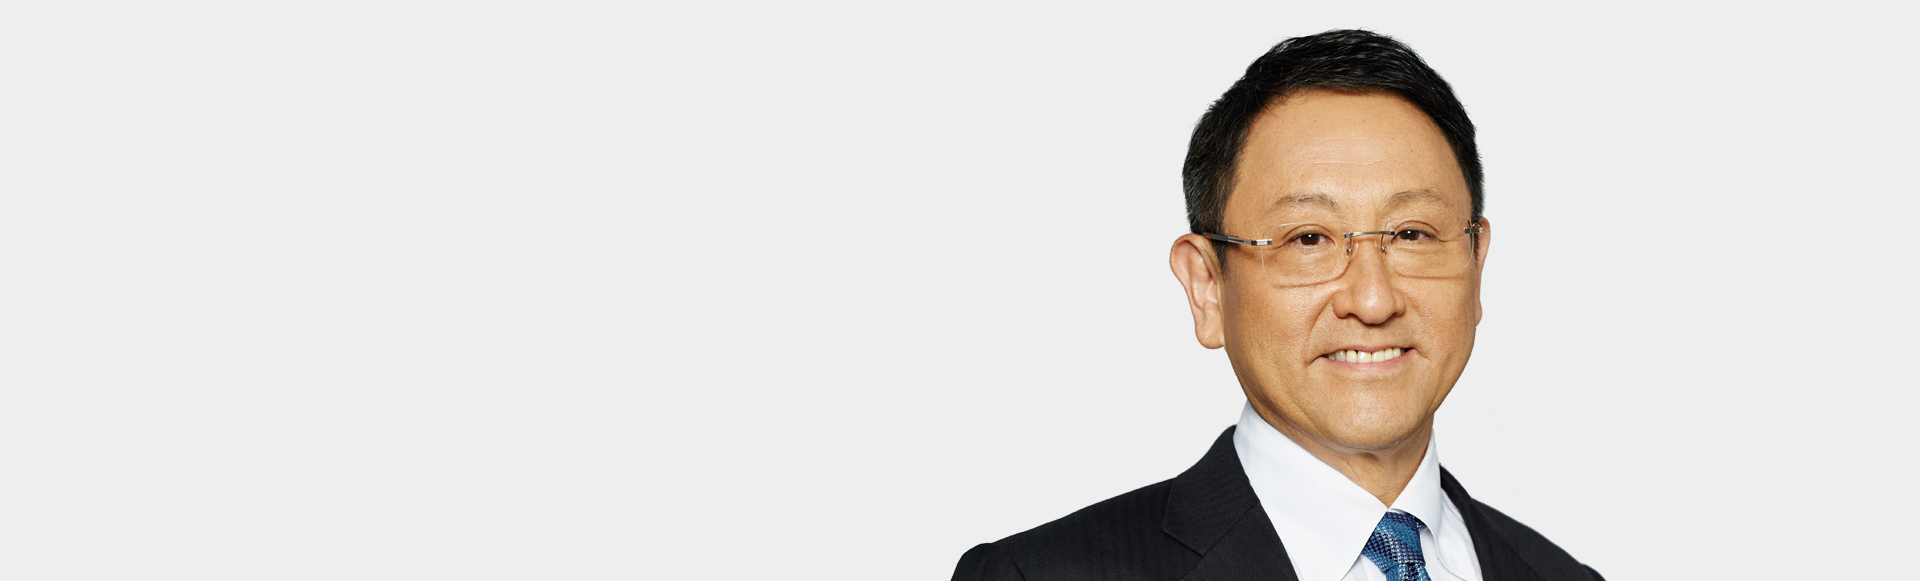 Akio Toyoda, President, Member of the Board of Directors | CORPORATE